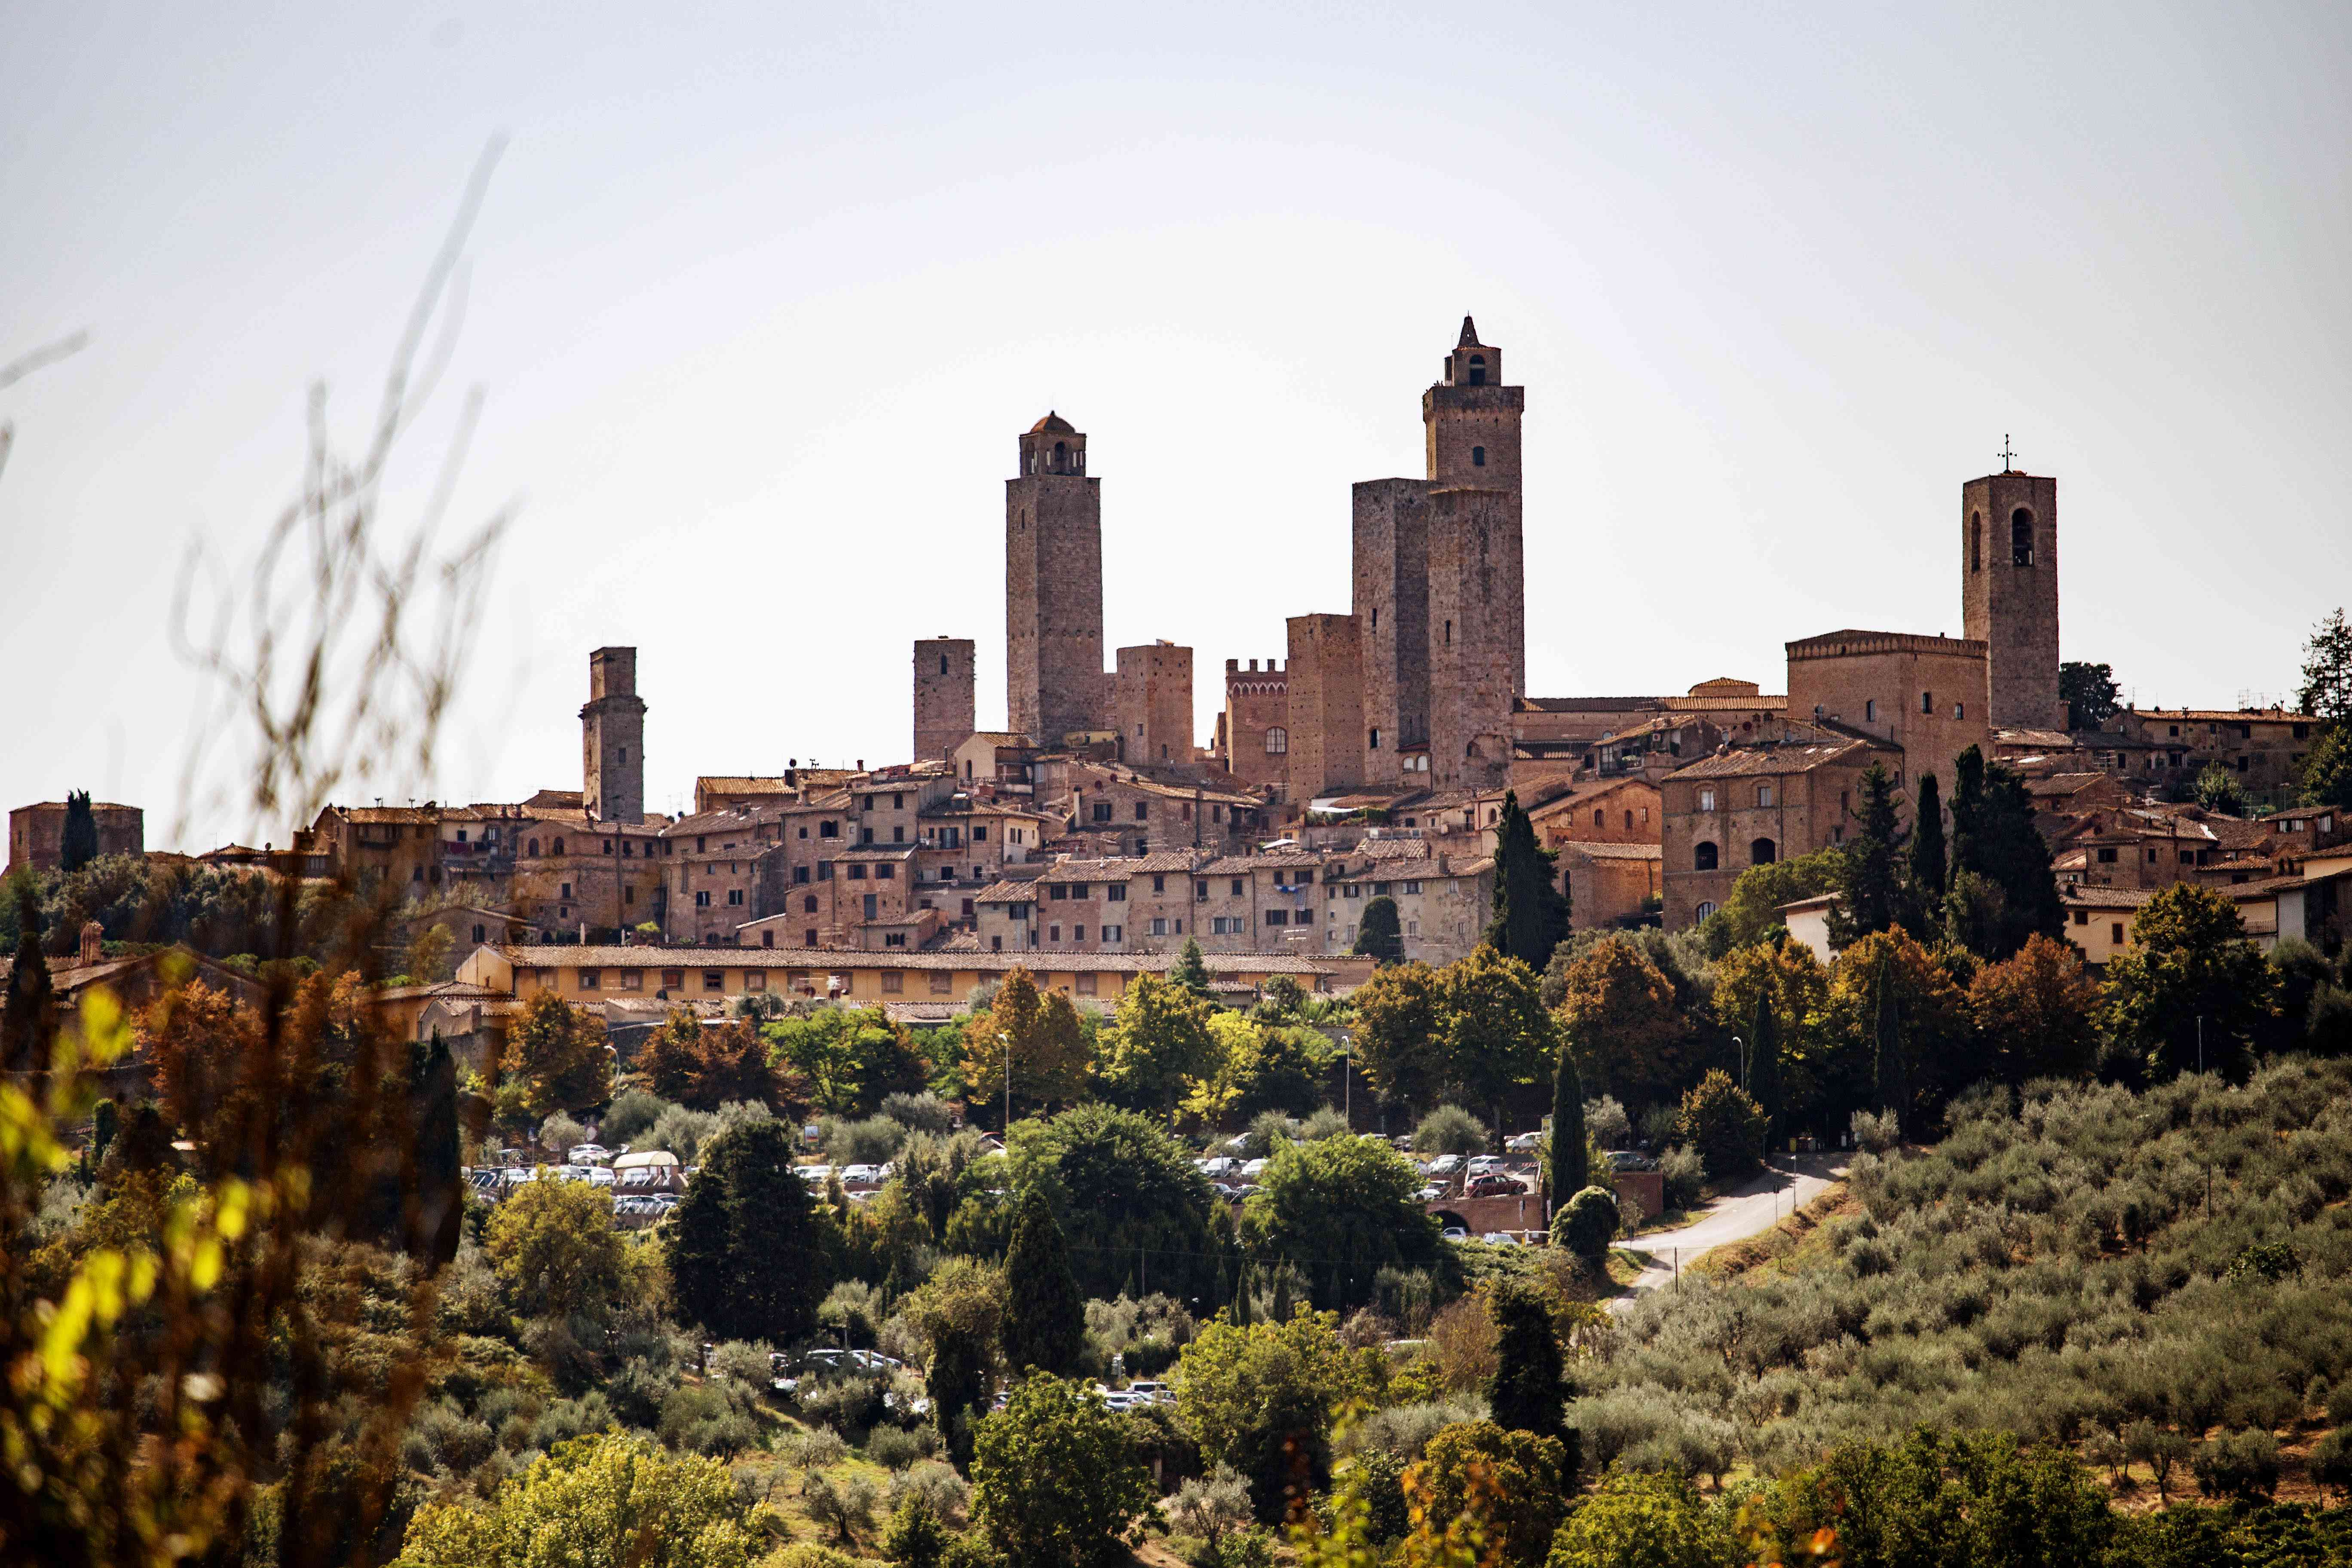 View of San Gimignano up on a hill